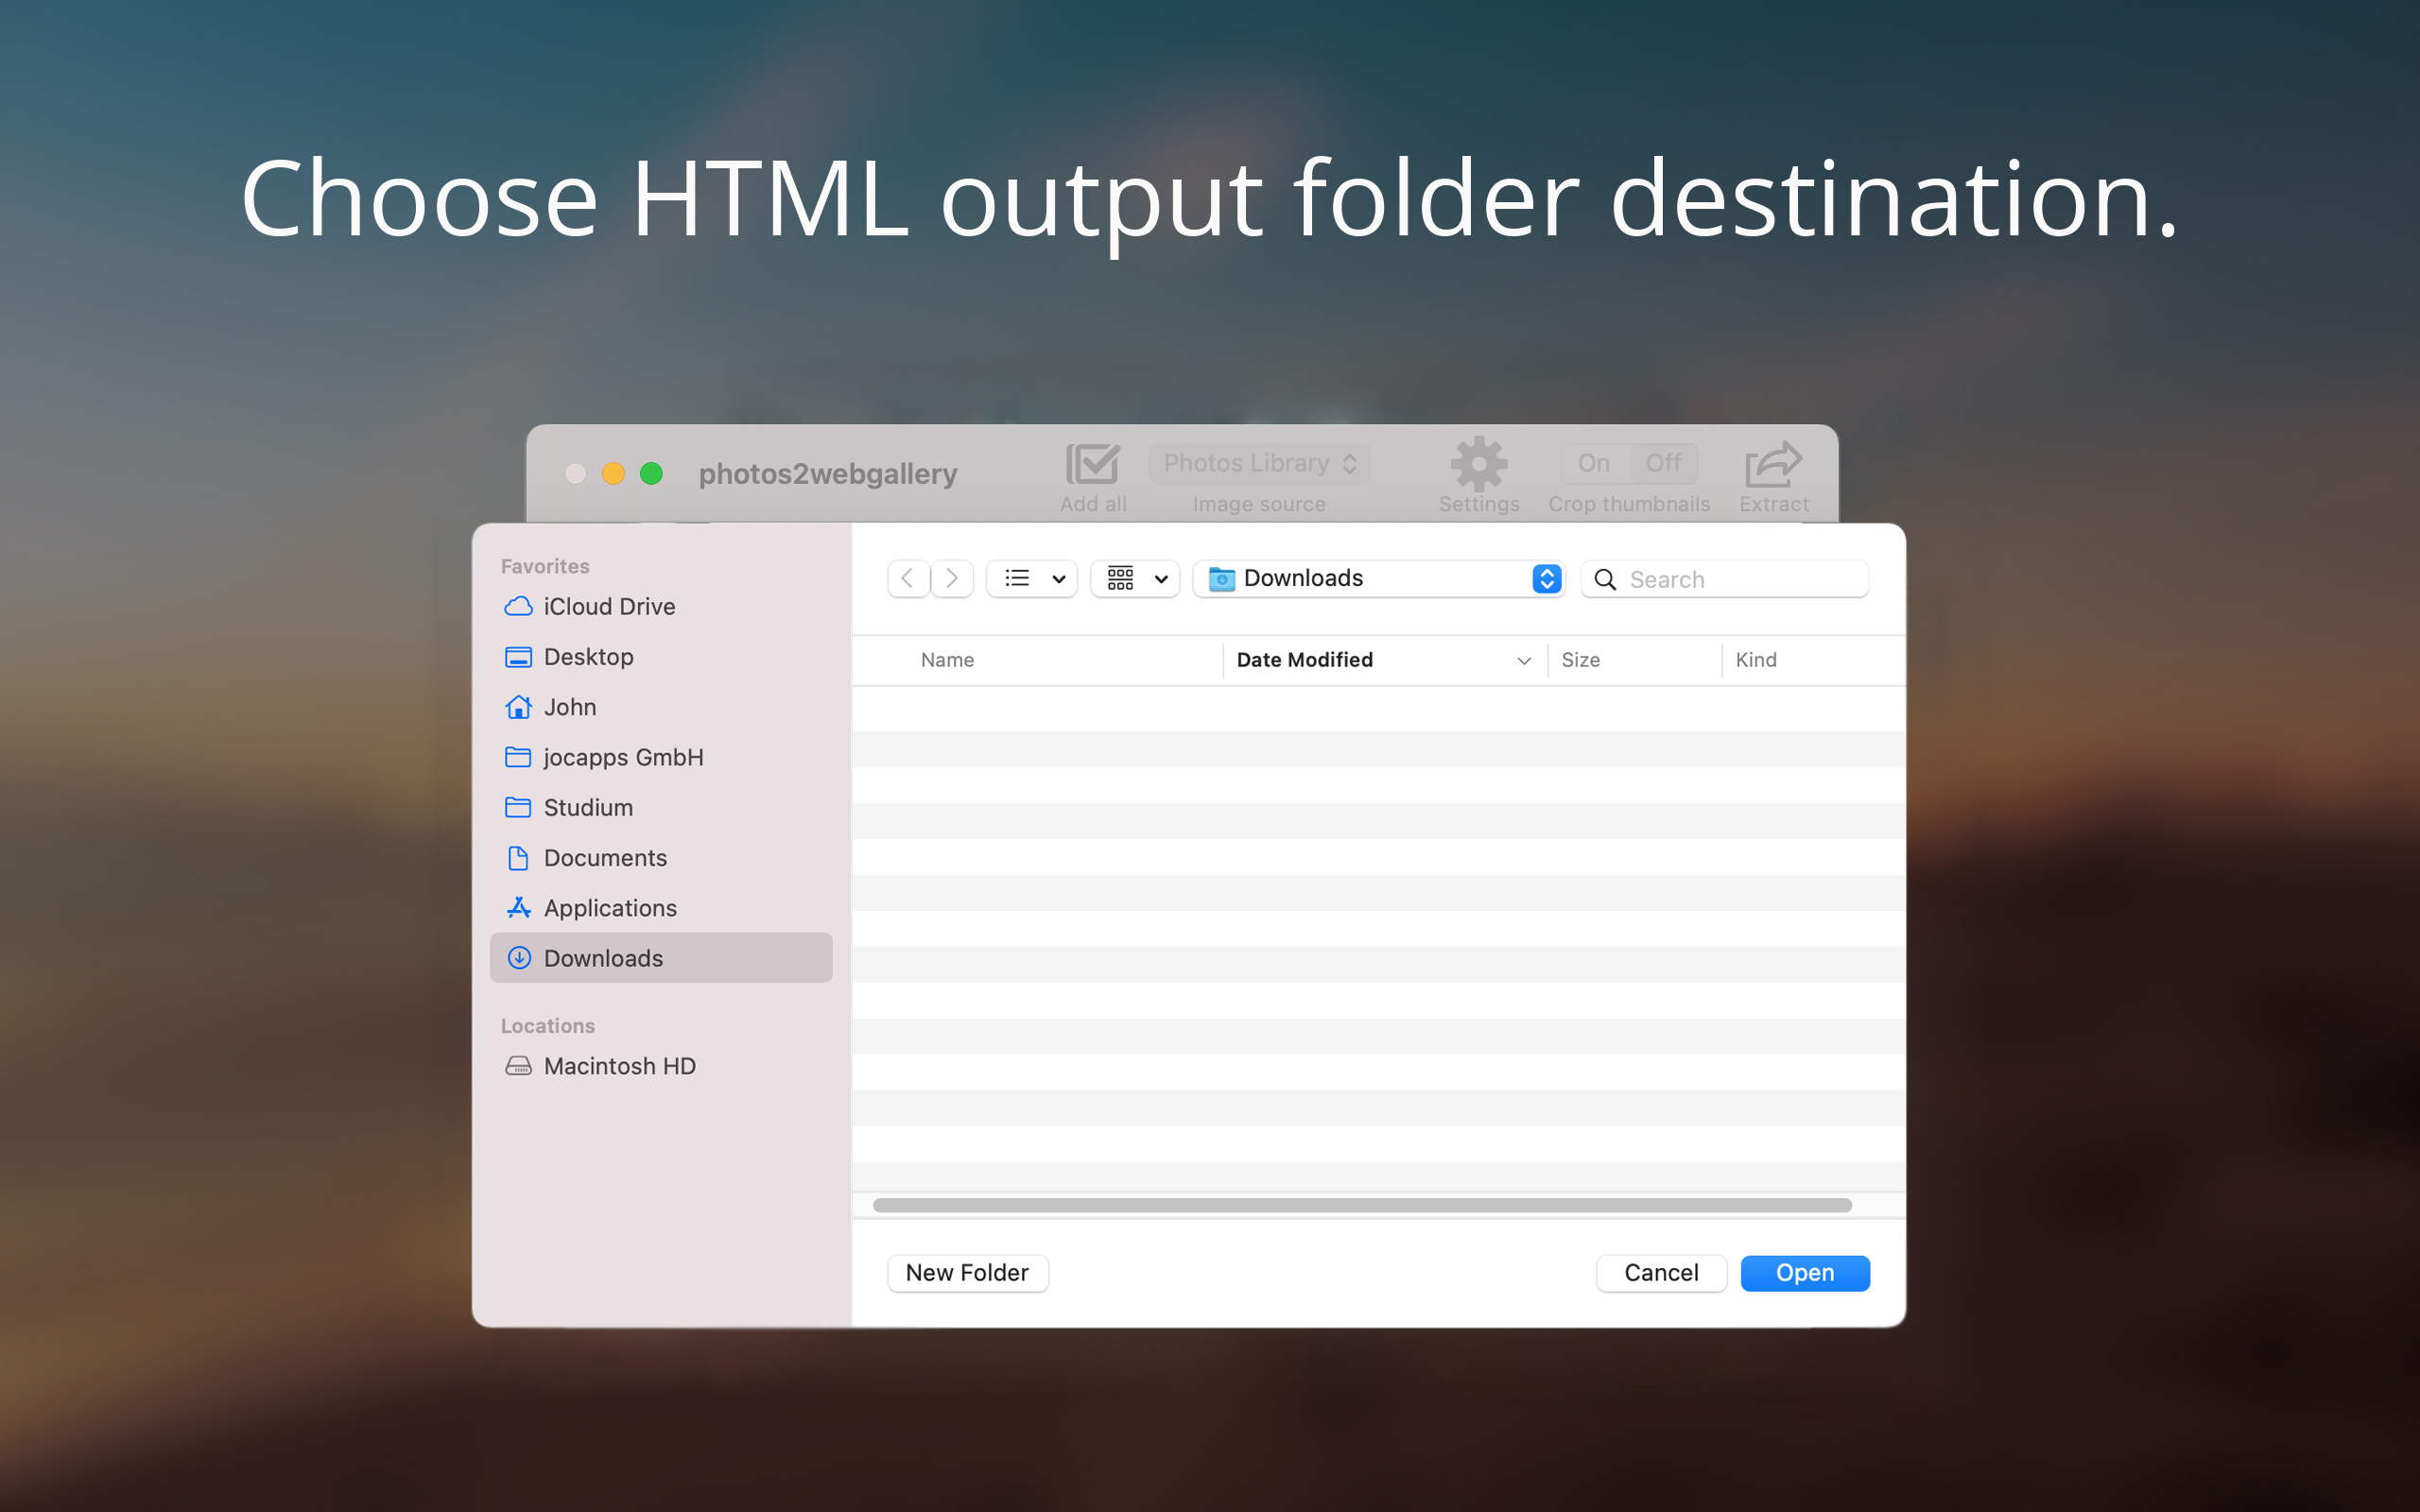 Choose HTML output folder destination.